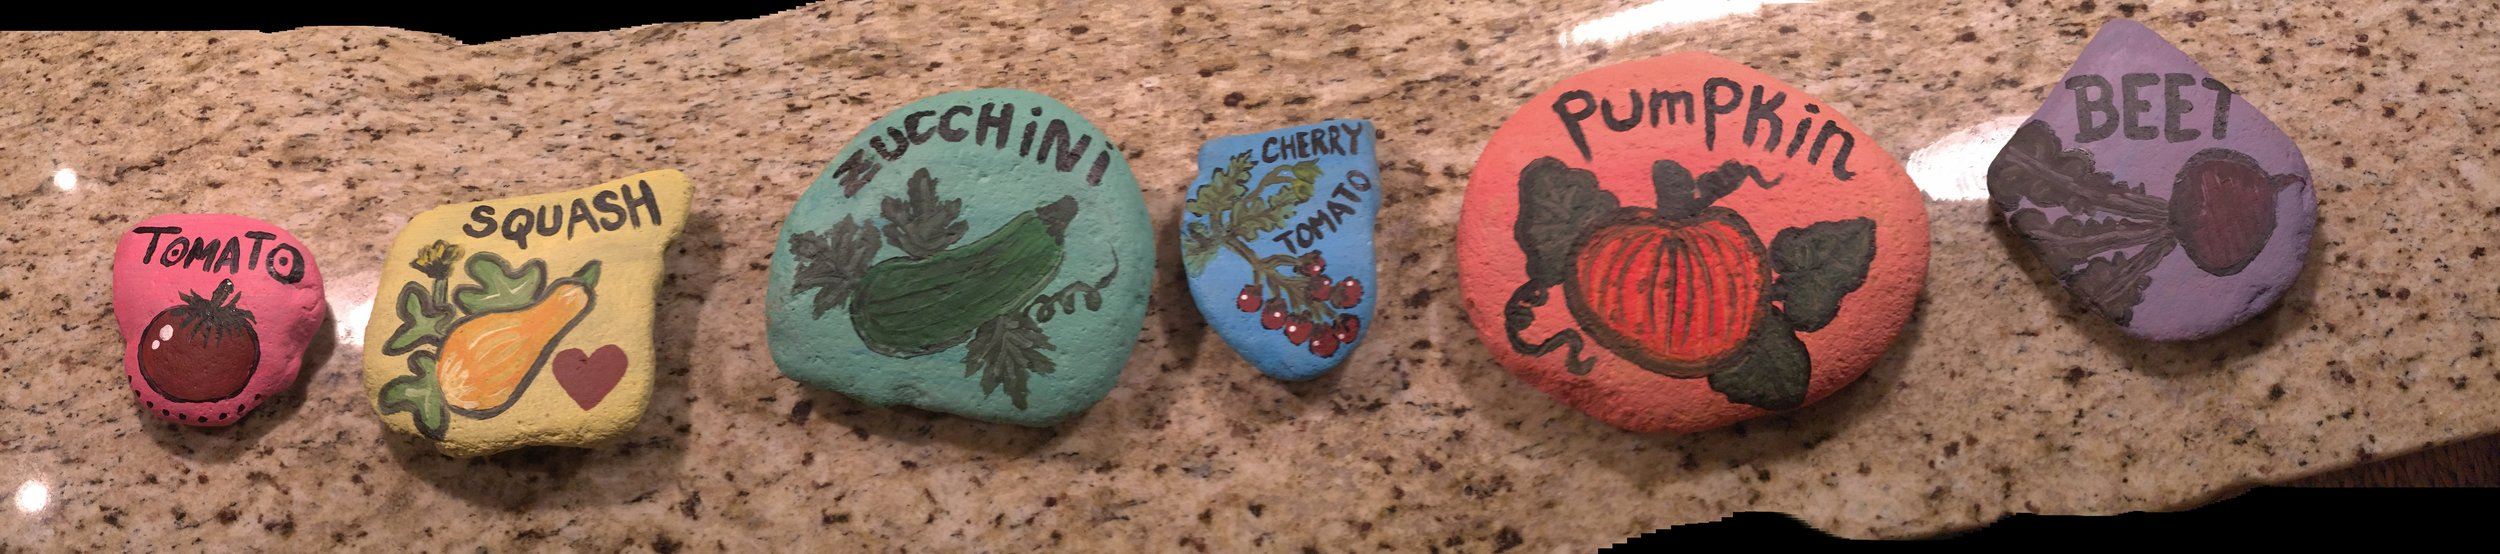 Check out these cool garden rocks! One of the many crafts-y projects courtesy of Skye this summer.